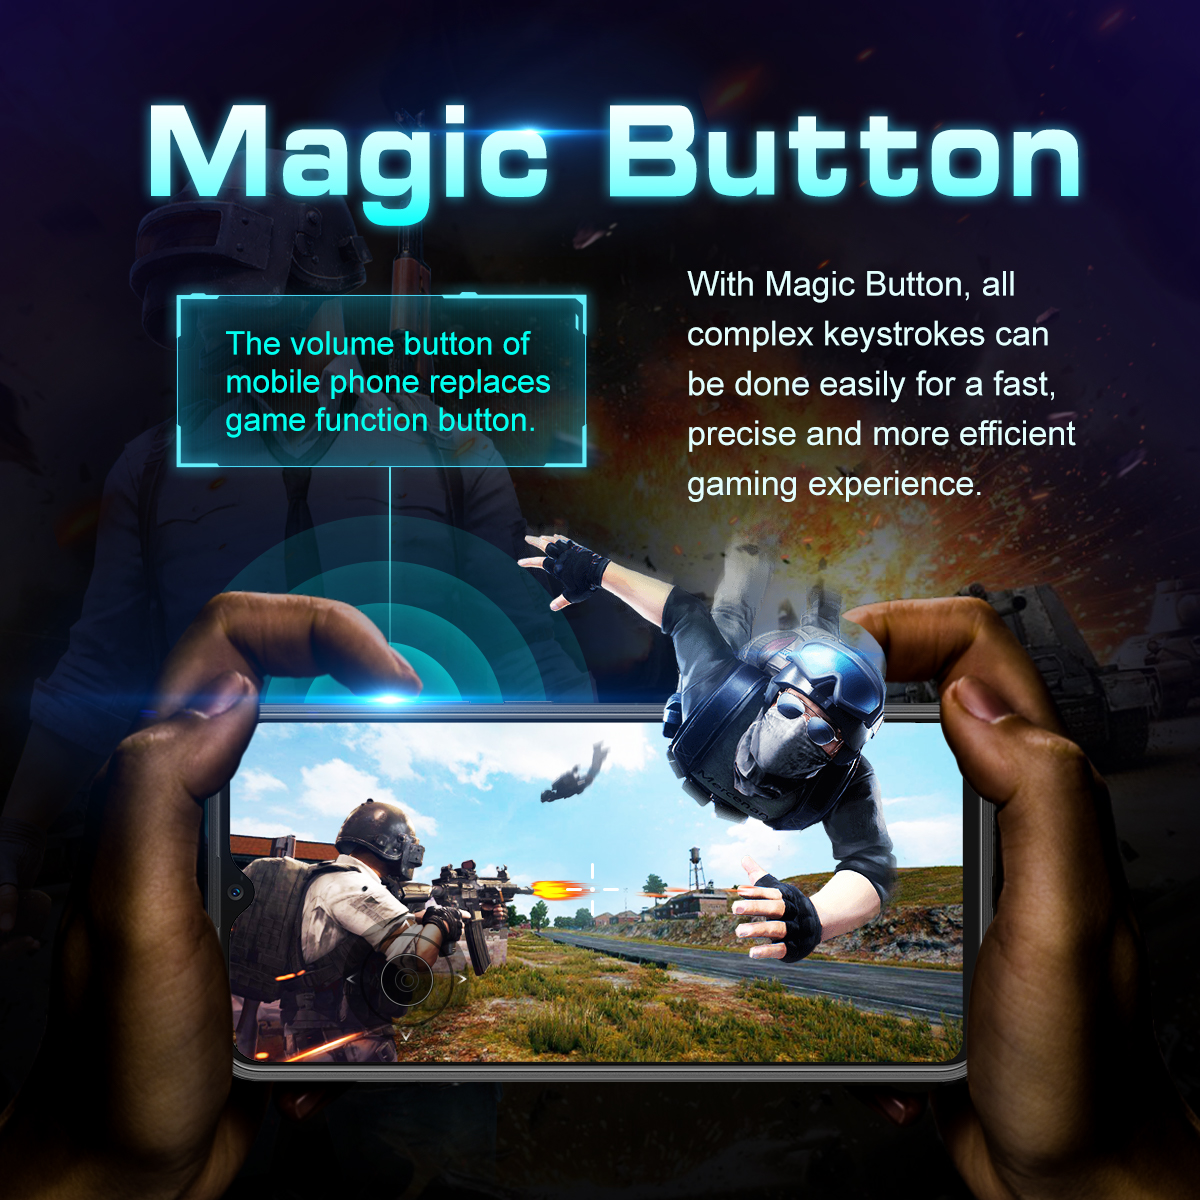 Phantom9-Magic button游戏魔法按钮-20190619.jpg